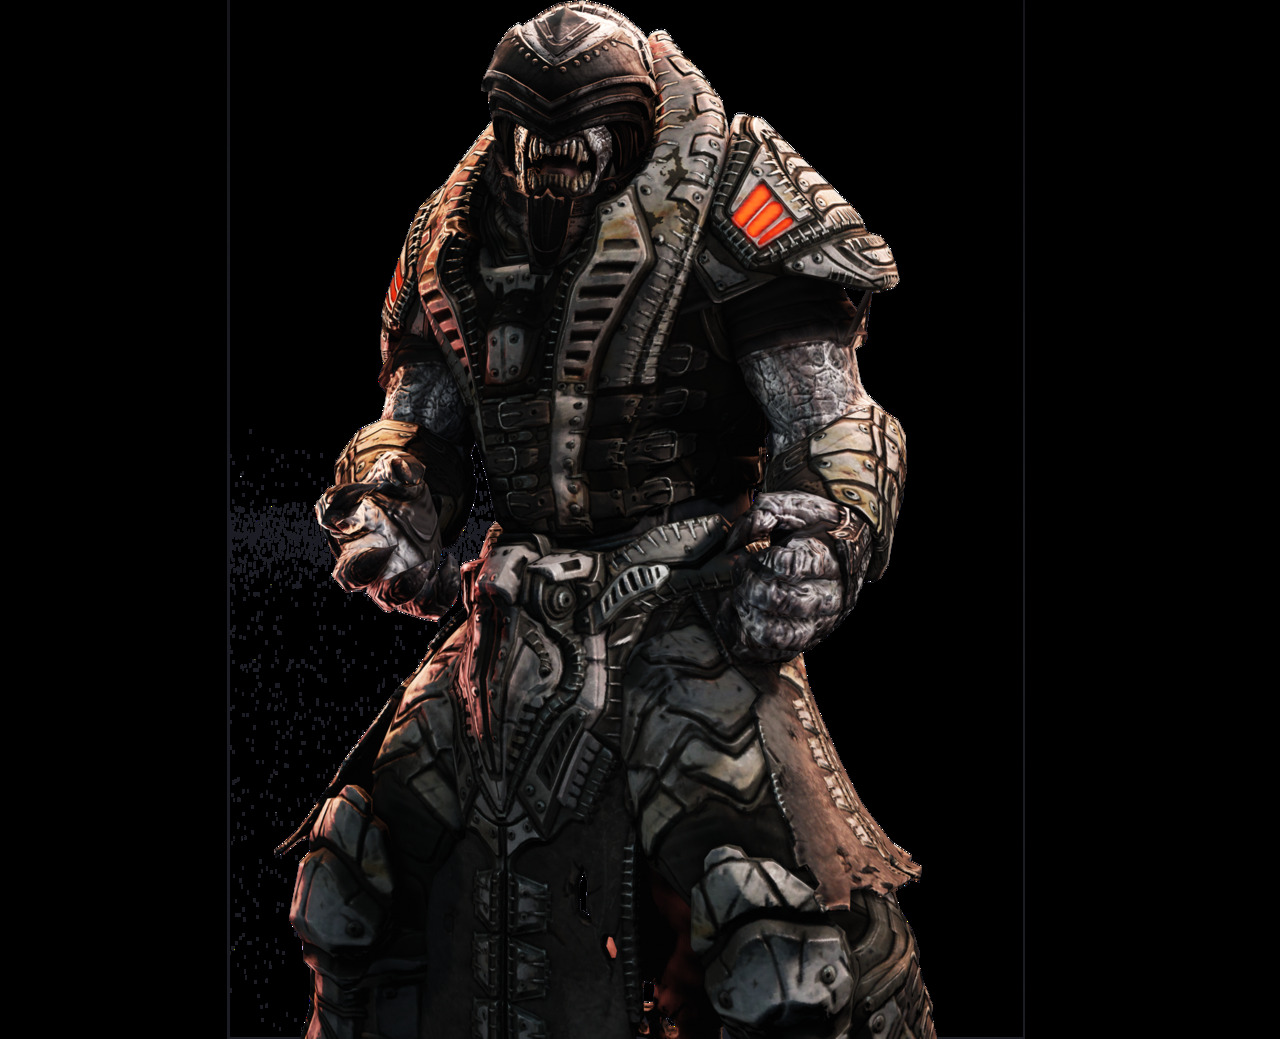 Artworky a screenshoty z Gears of War 3 44686